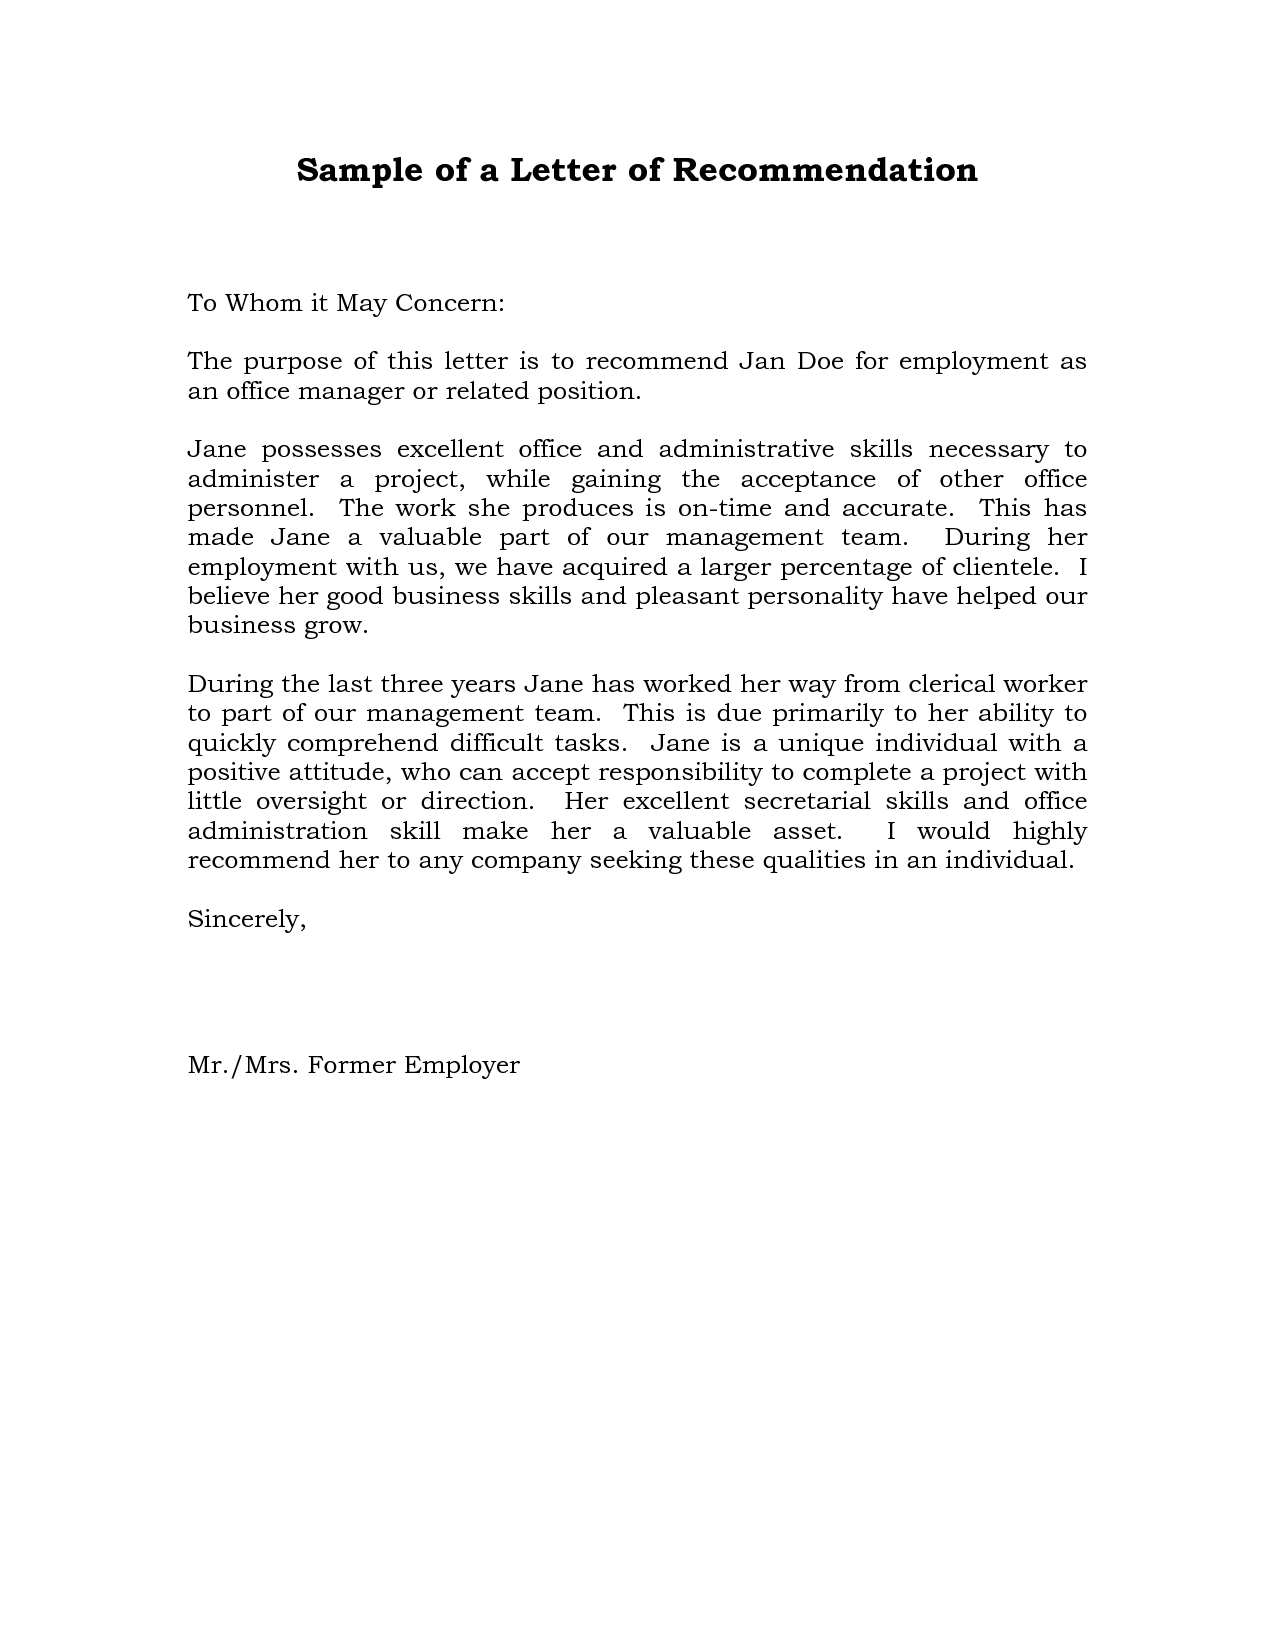 Reference Letter of Recommendation Sample – Letter of Recommendation for Job